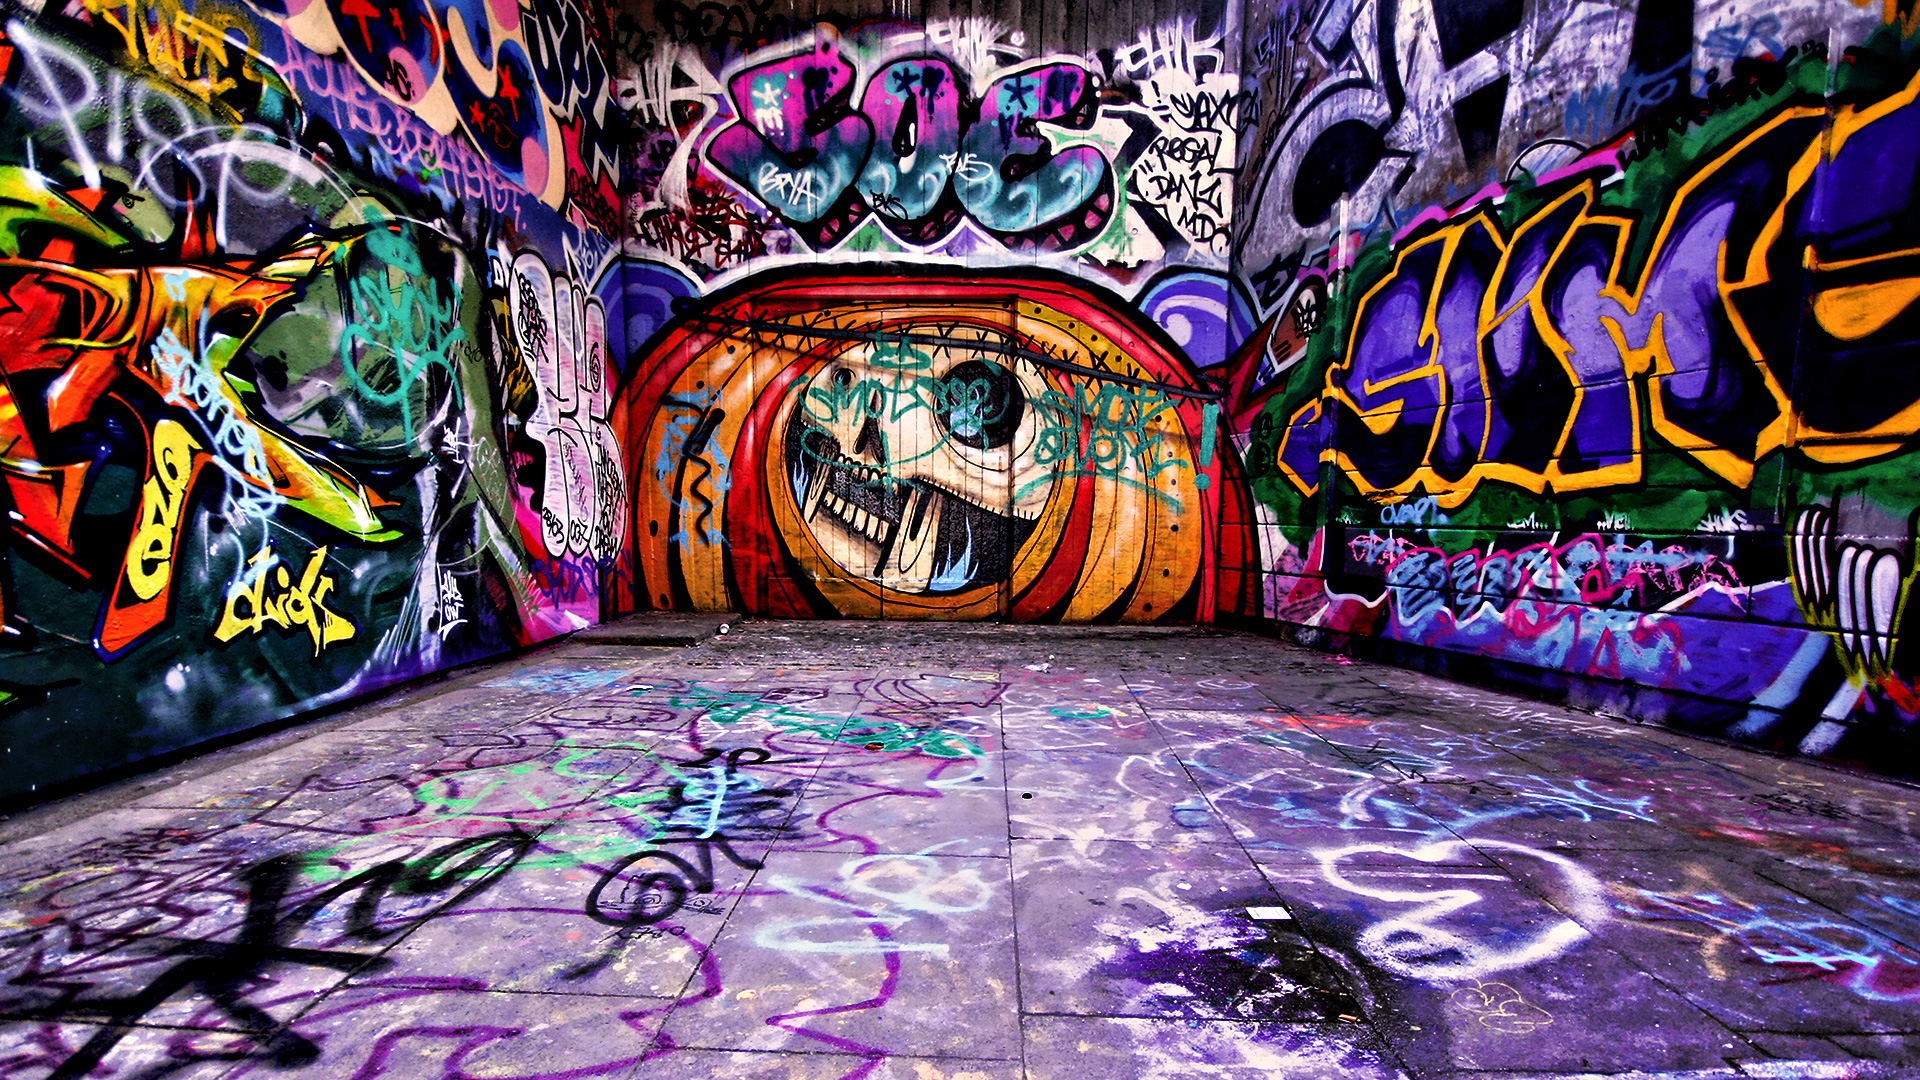 Graffiti wallpapers - Free A11 fonts HD Desktop background images pictures downloads HD Graffiti wallpapers - Free cool A11 fonts 3d bedroom art walls High Definition desktop laptop tablet mobile background pictures images downloads.